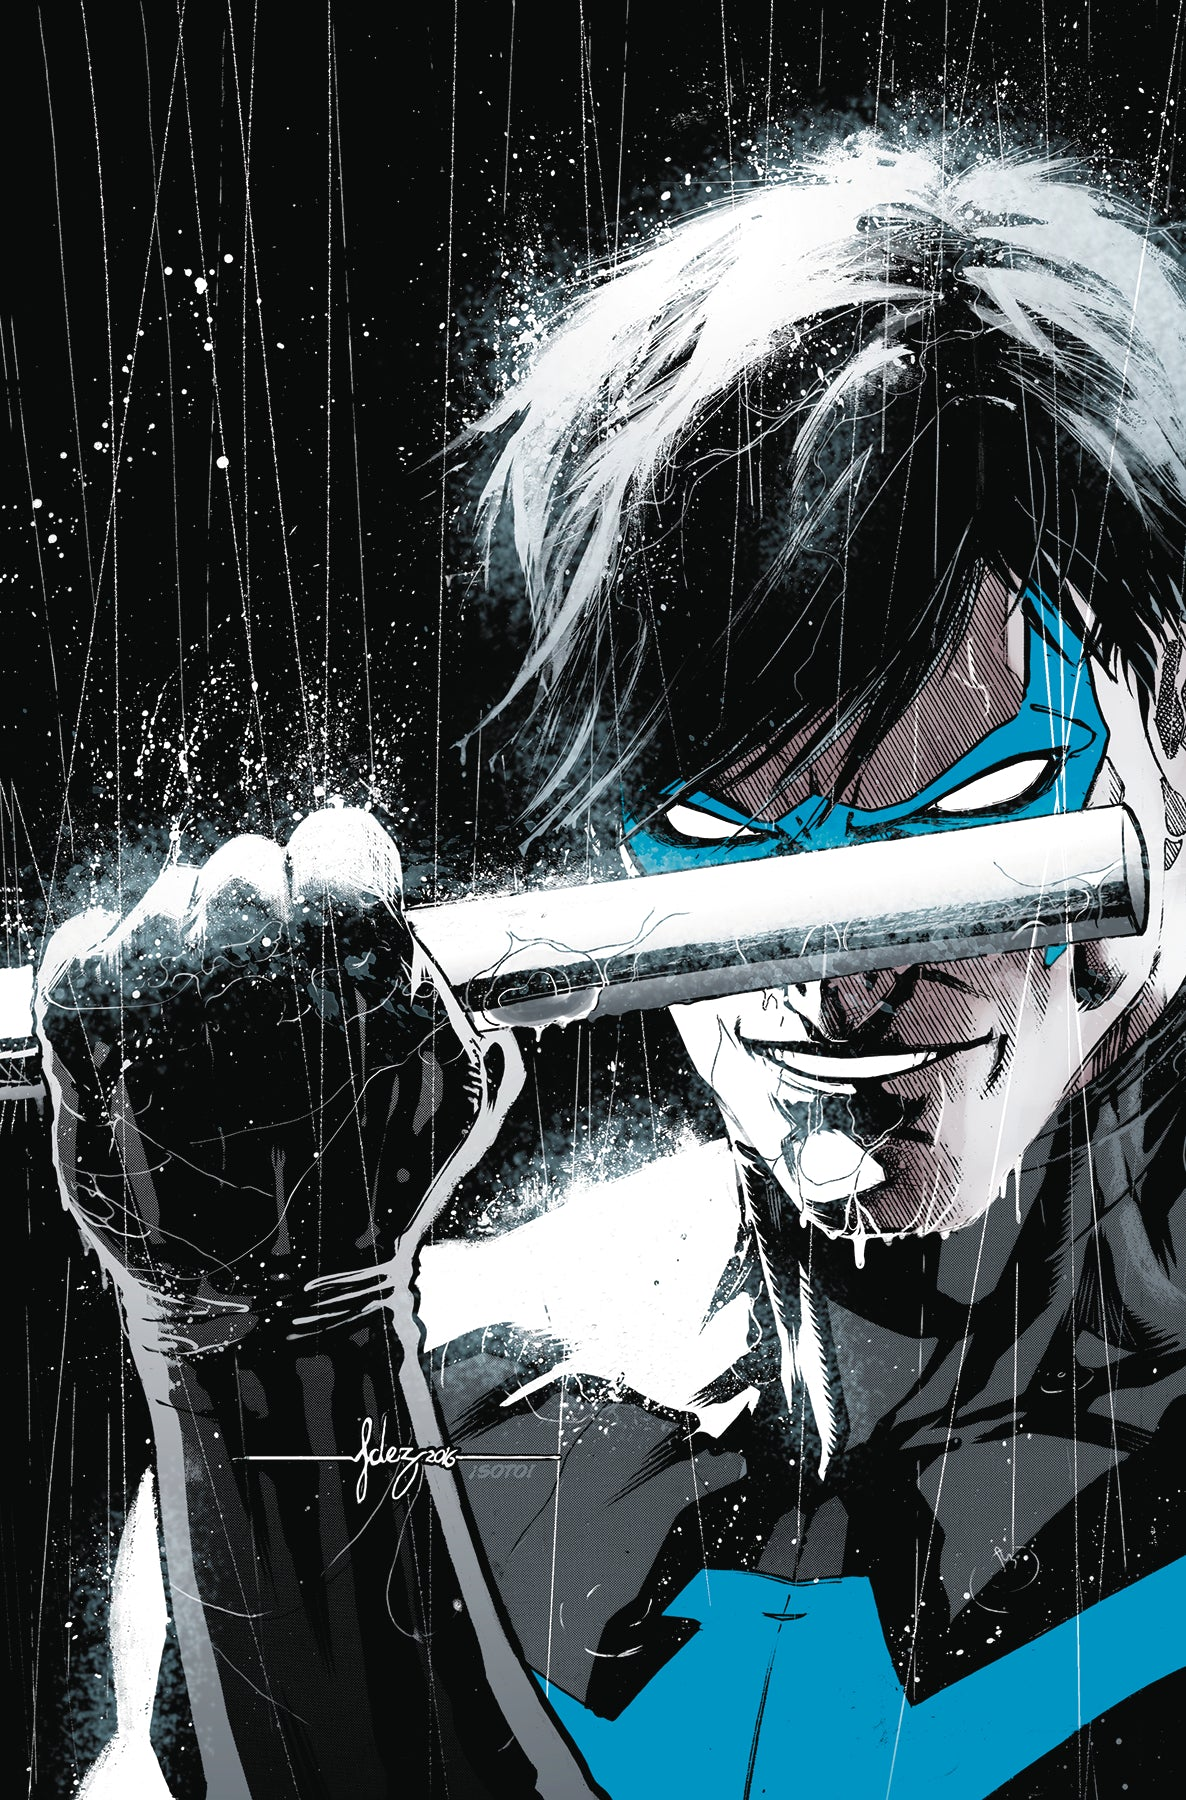 NIGHTWING TP VOL 01 BETTER THAN BATMAN (REBIRTH) | Game Master's Emporium (The New GME)